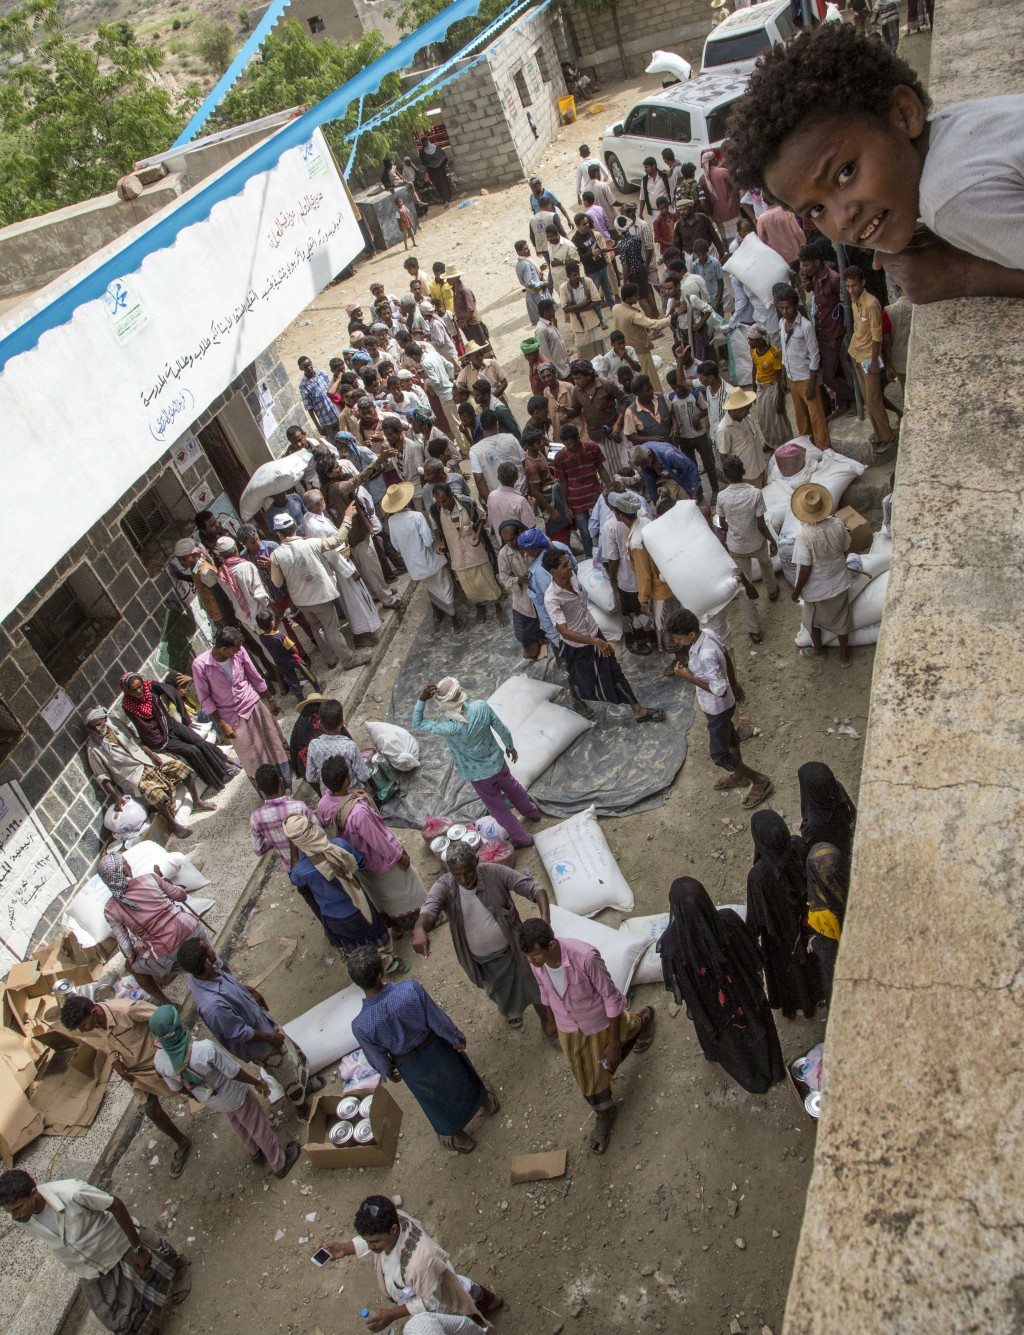 This Nov. 16, 2018 photo shows food distribution by the WFP in Aslem, Yemen. The U.N. food agency said Thursday, Dec. 6, 2018 it is planning to rapidl